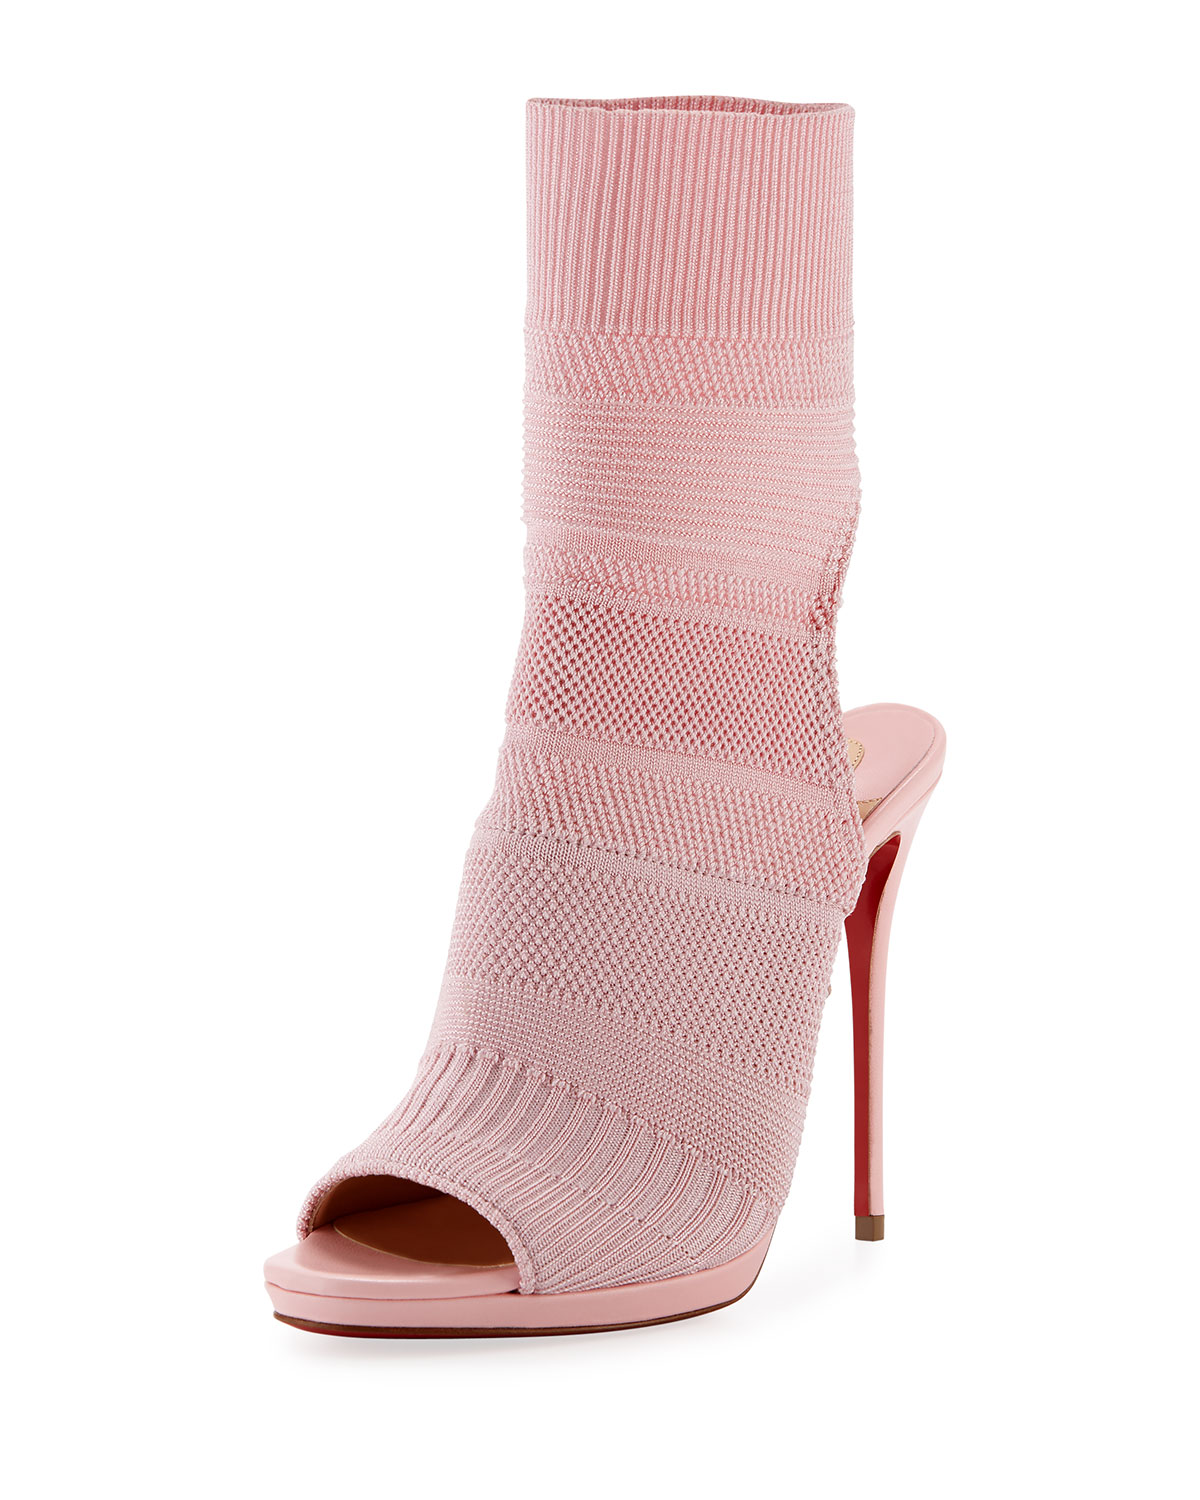 9dcb06f4f705 Christian Louboutin Cheminene Stretch-Knit Open-Toe Red Sole Bootie ...